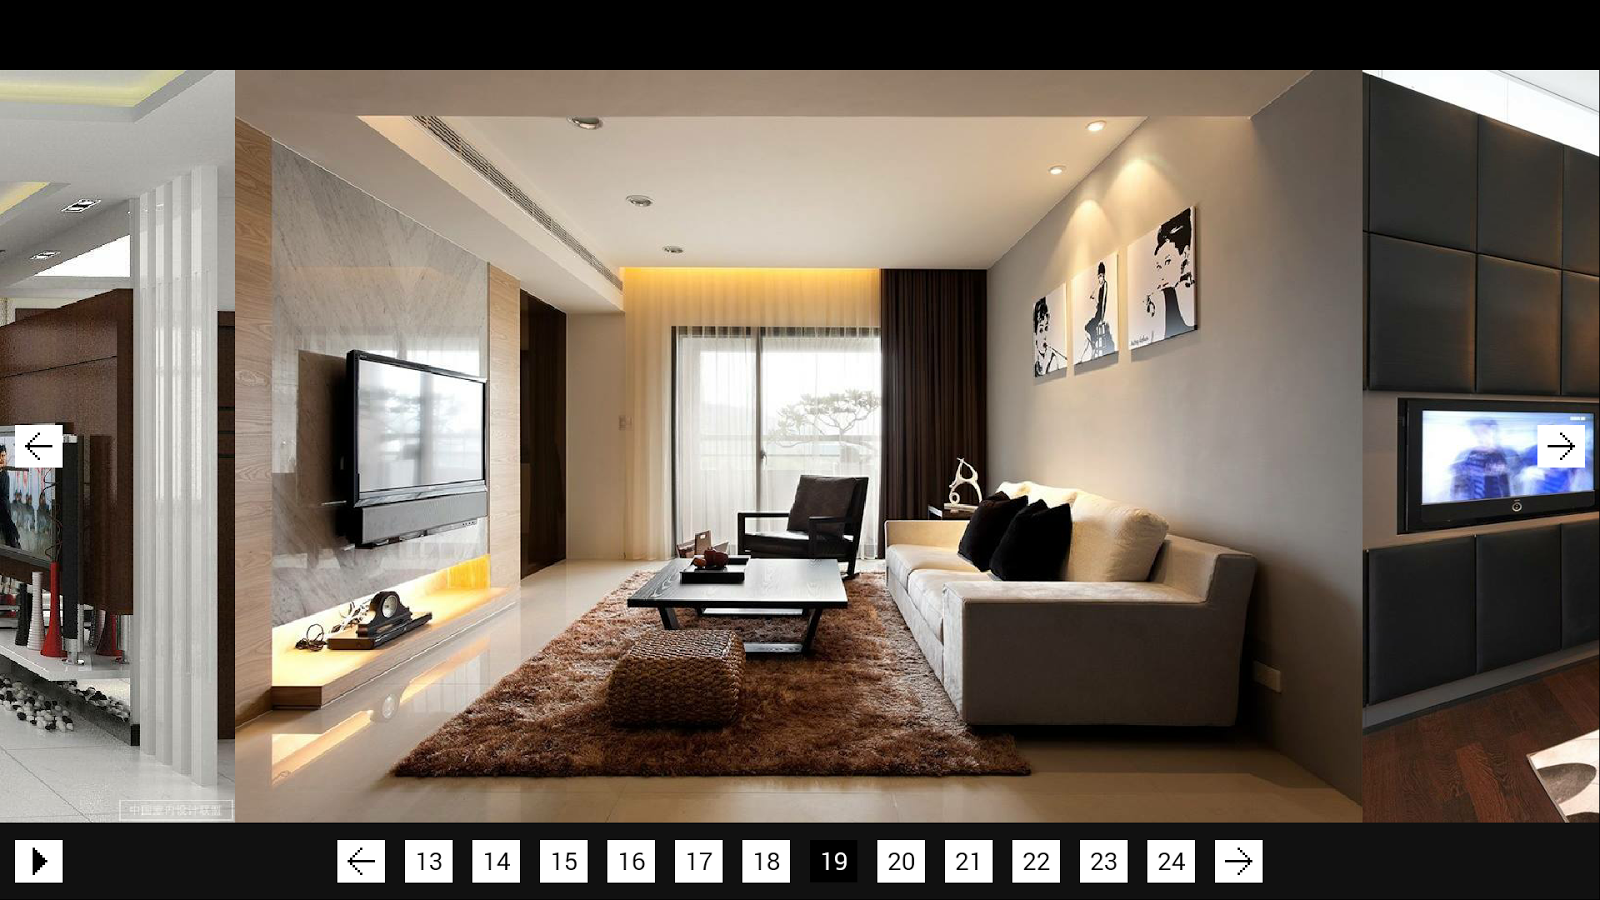 App Description Want Inspiration For Decorating Your Home Interior